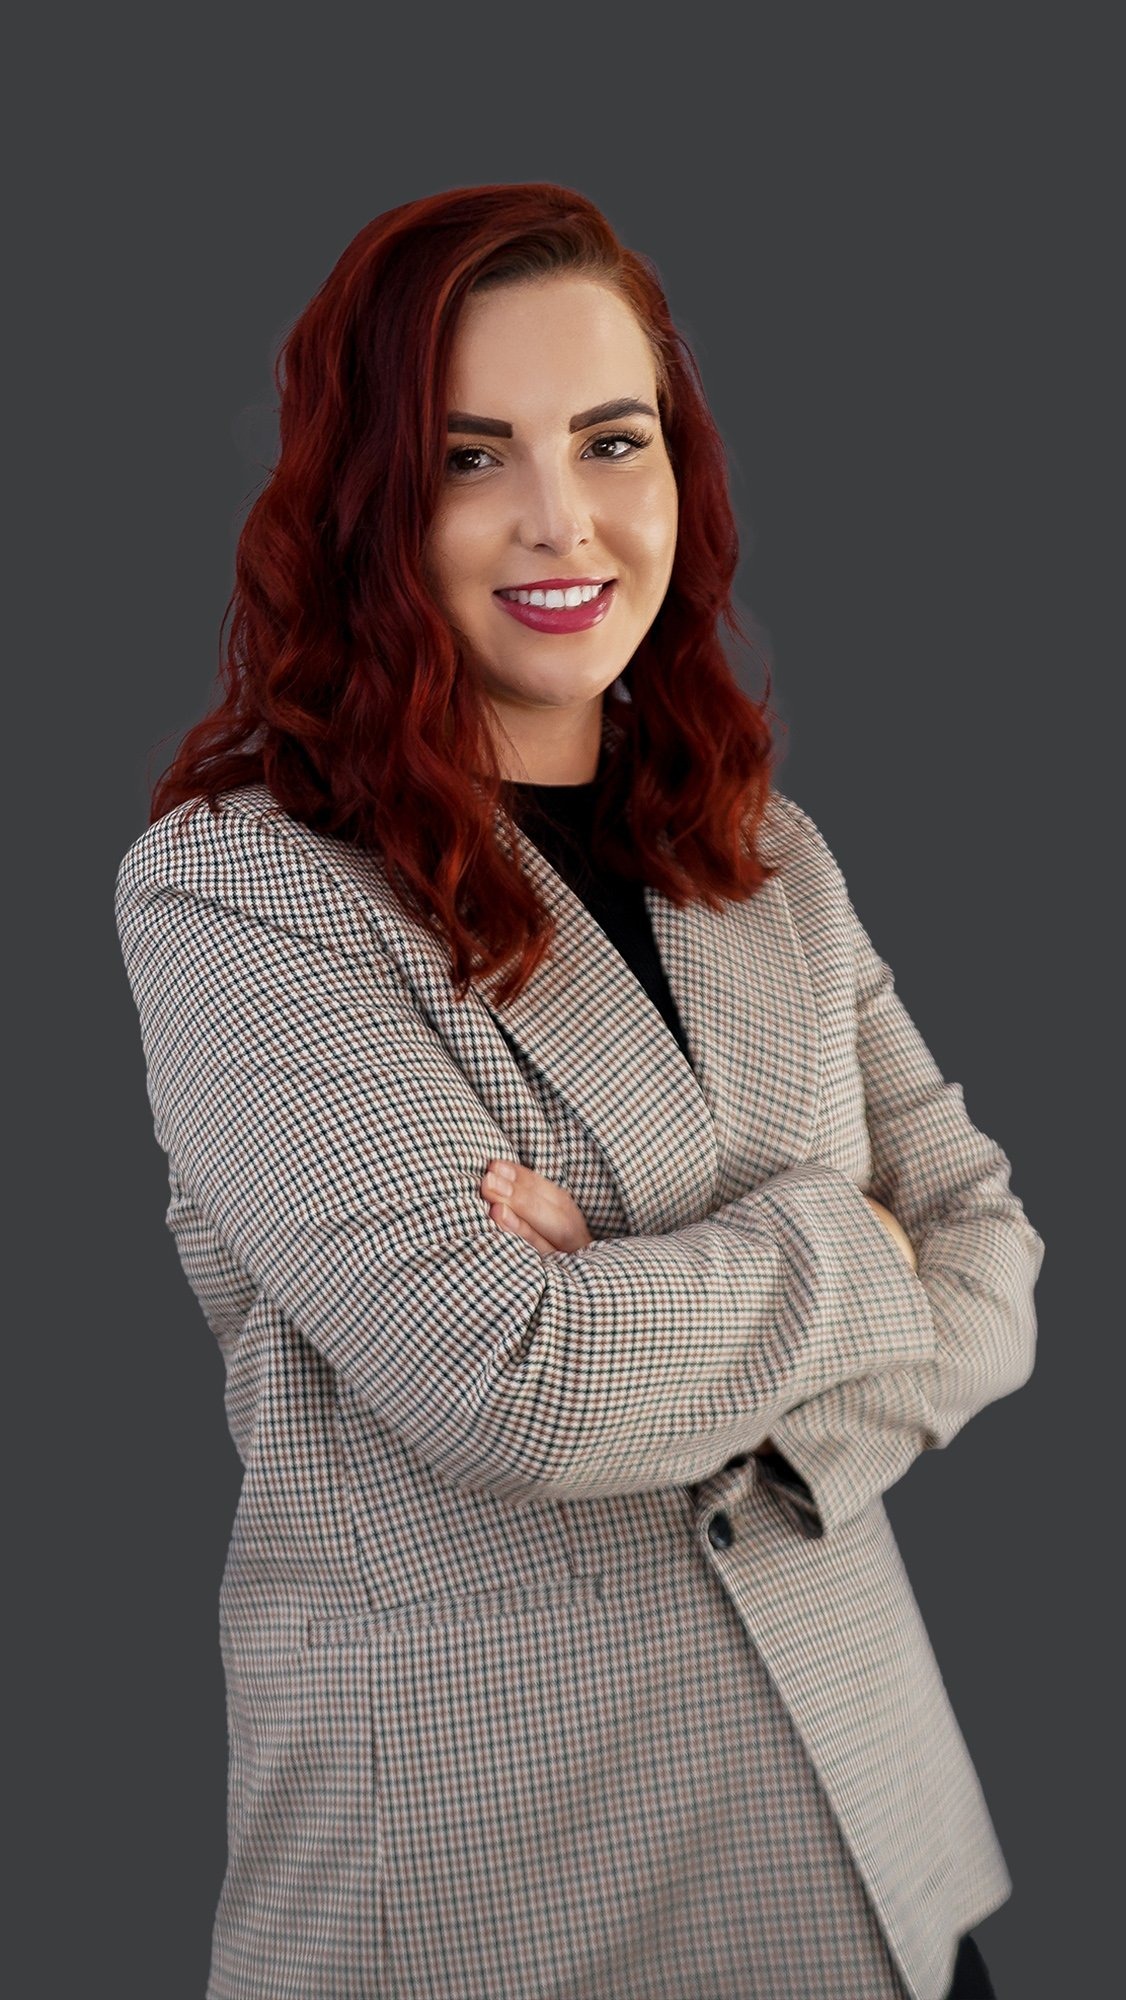 Rebecca Howden Property Consultant at haus & haus